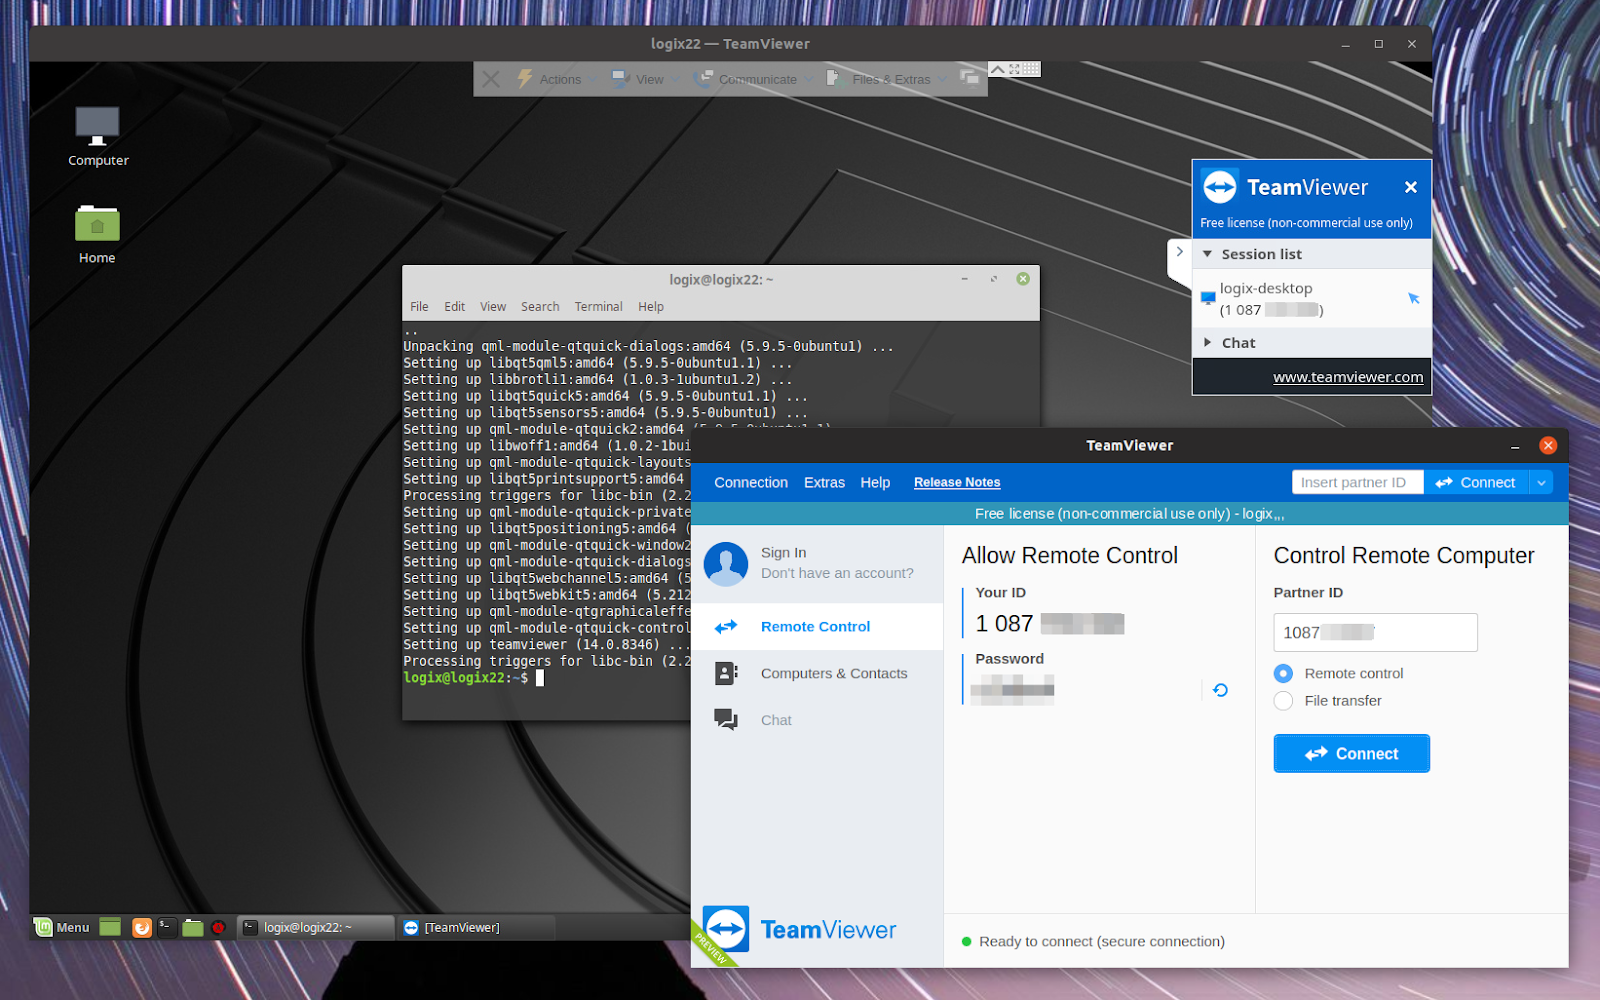 TeamViewer 14 Available For Download (Remote Desktop